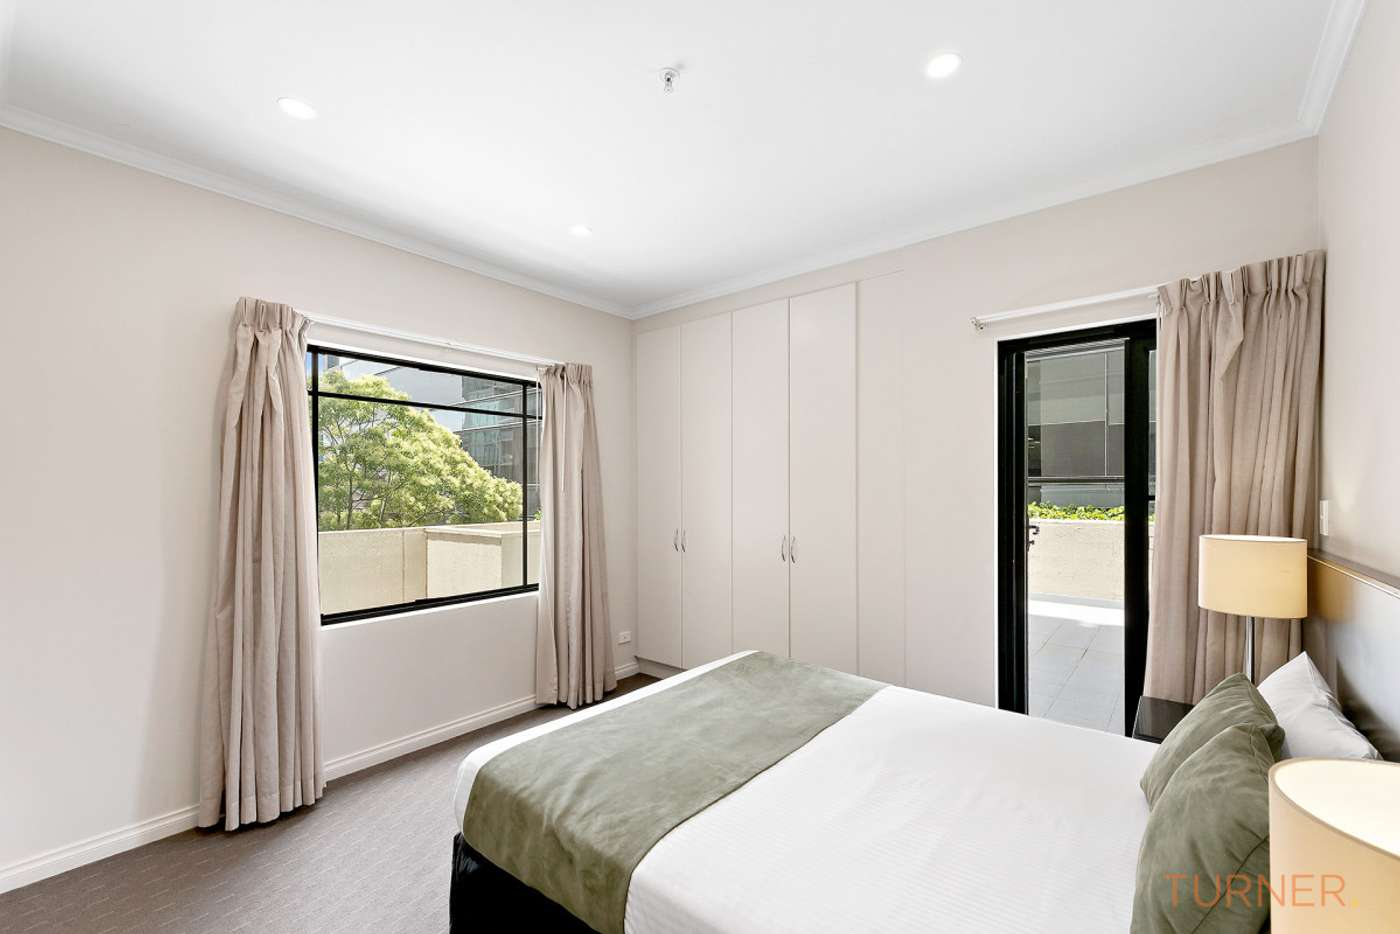 Sixth view of Homely apartment listing, 107/88 Frome Street, Adelaide SA 5000